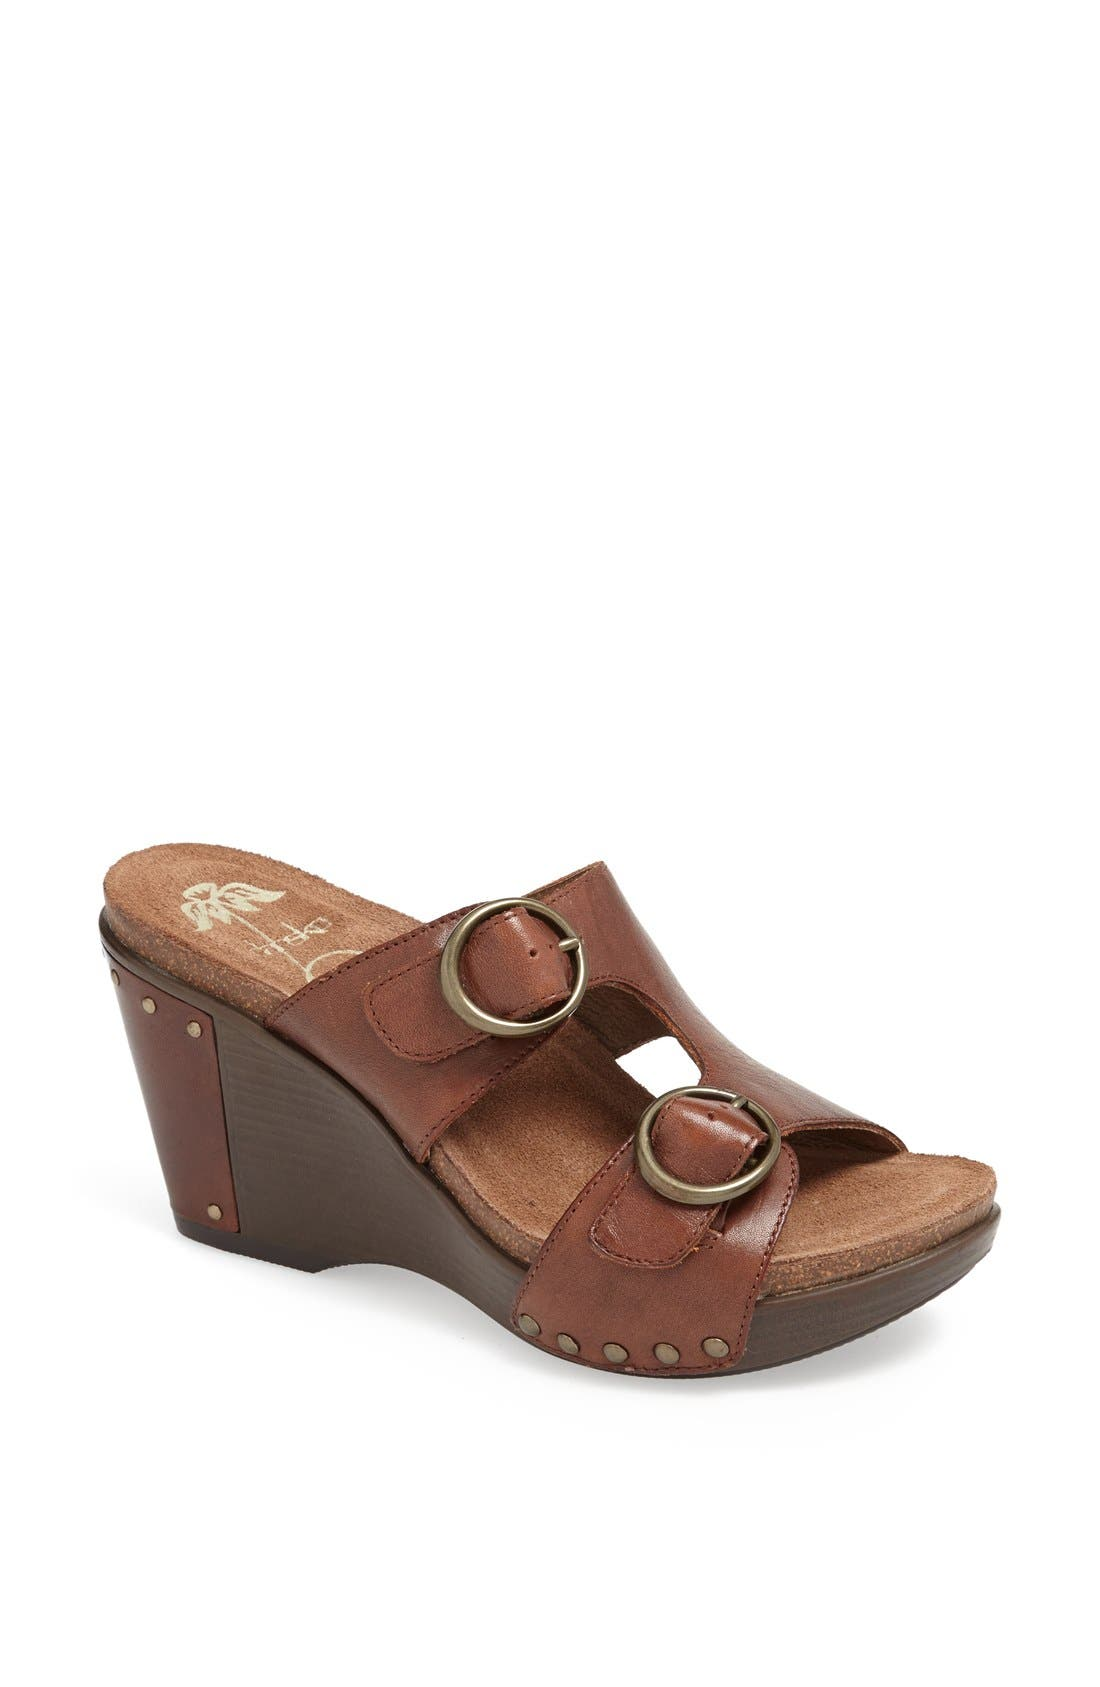 Alternate Image 1 Selected - Dansko 'Fern' Sandal